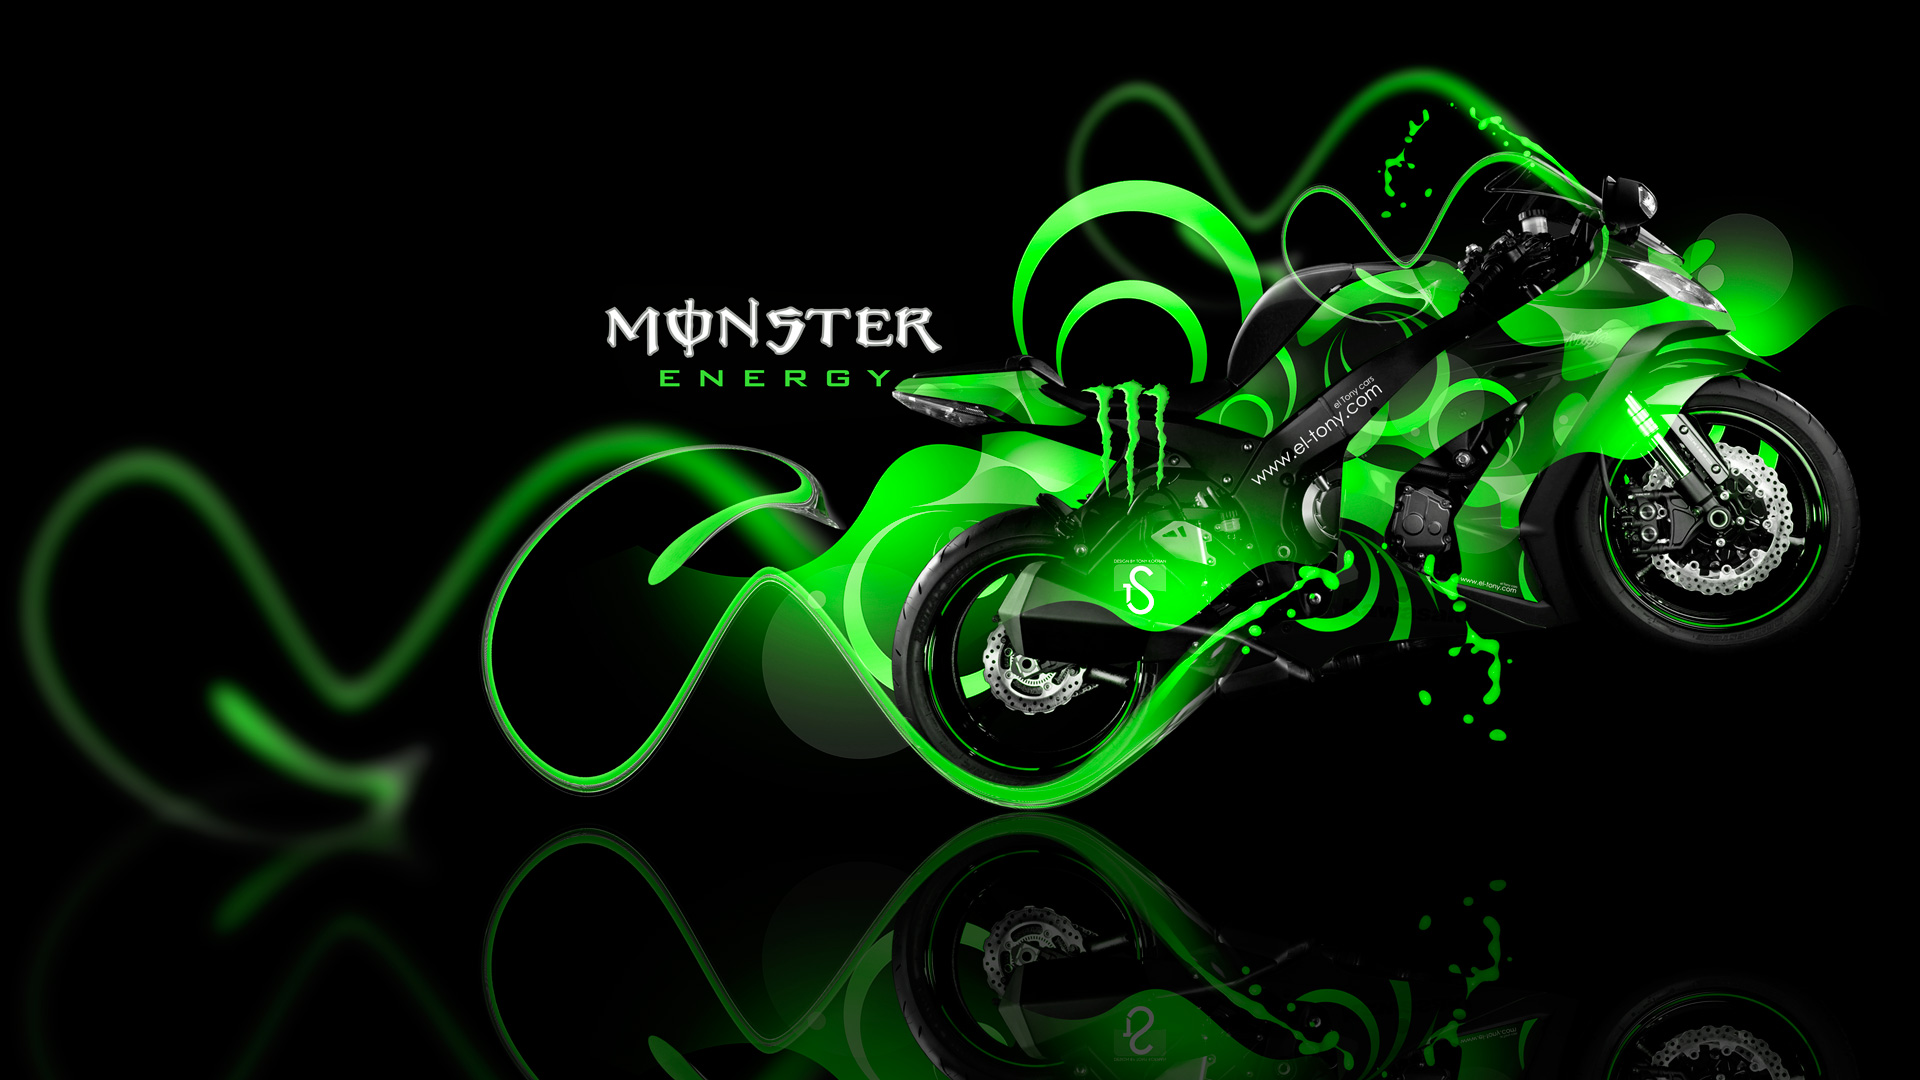 monster energy wallpapers pictures images